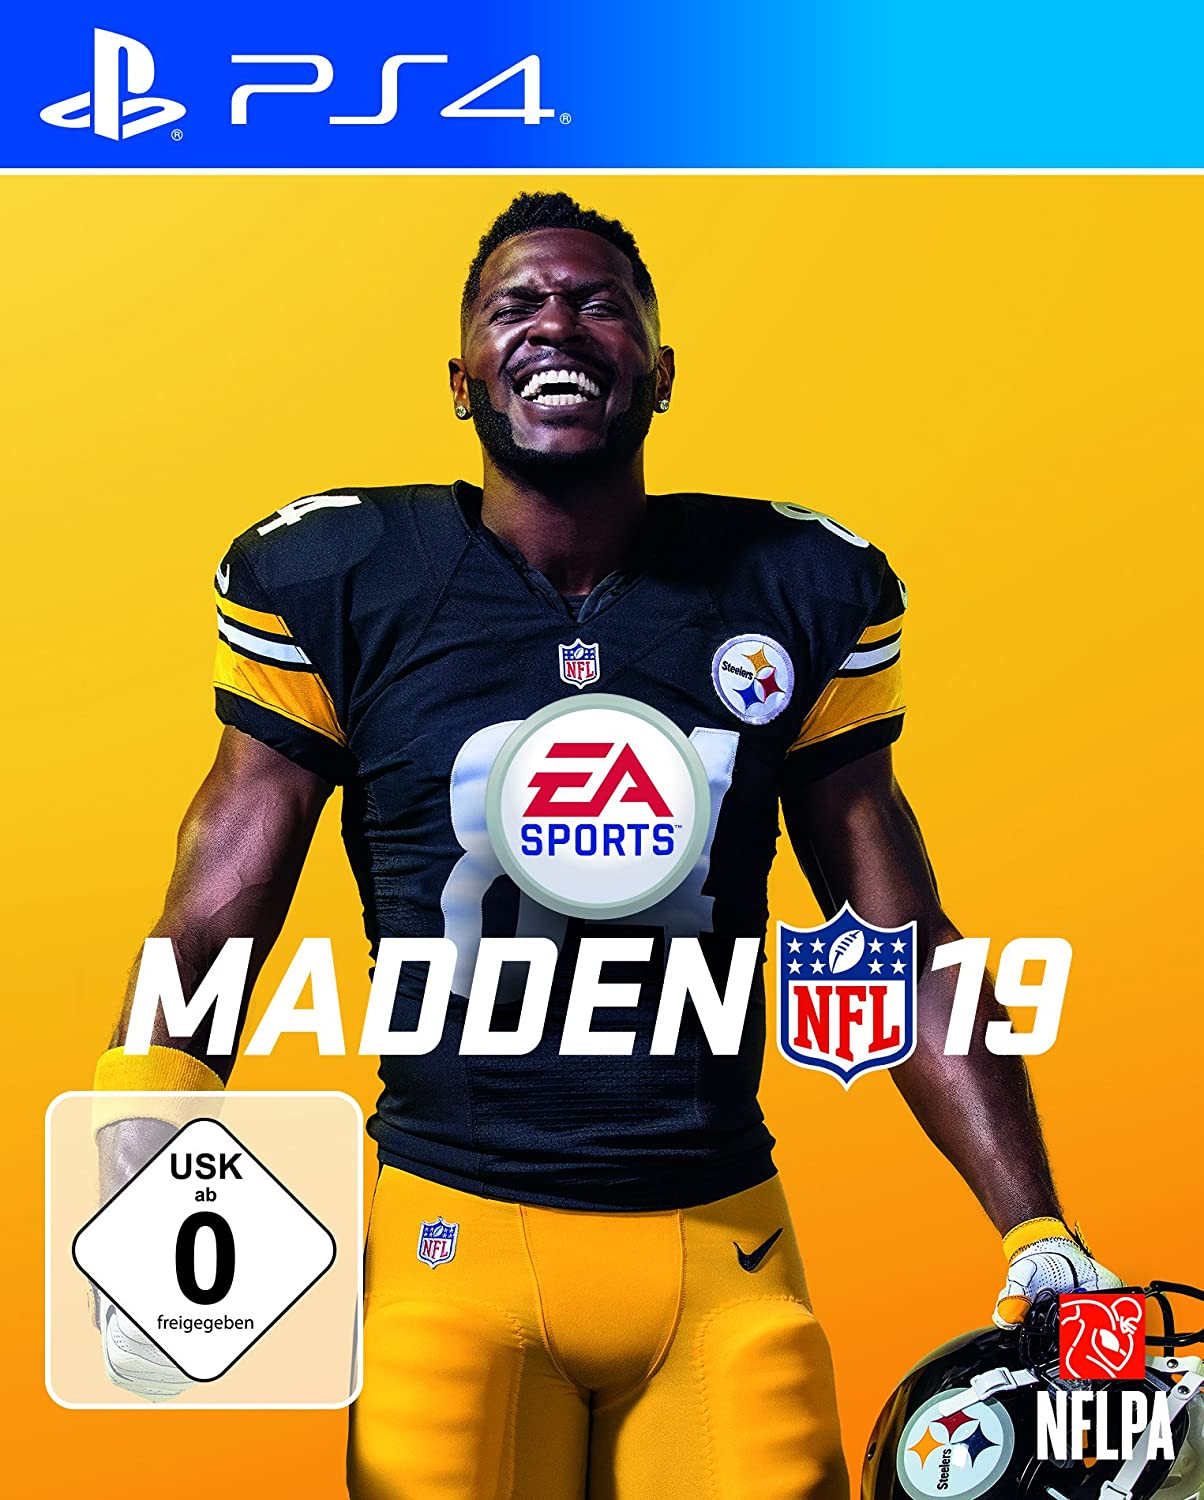 PS4 Game Madden NFL 19 American Football 2019 DHL Express Delivery New 5035226121944  eBay